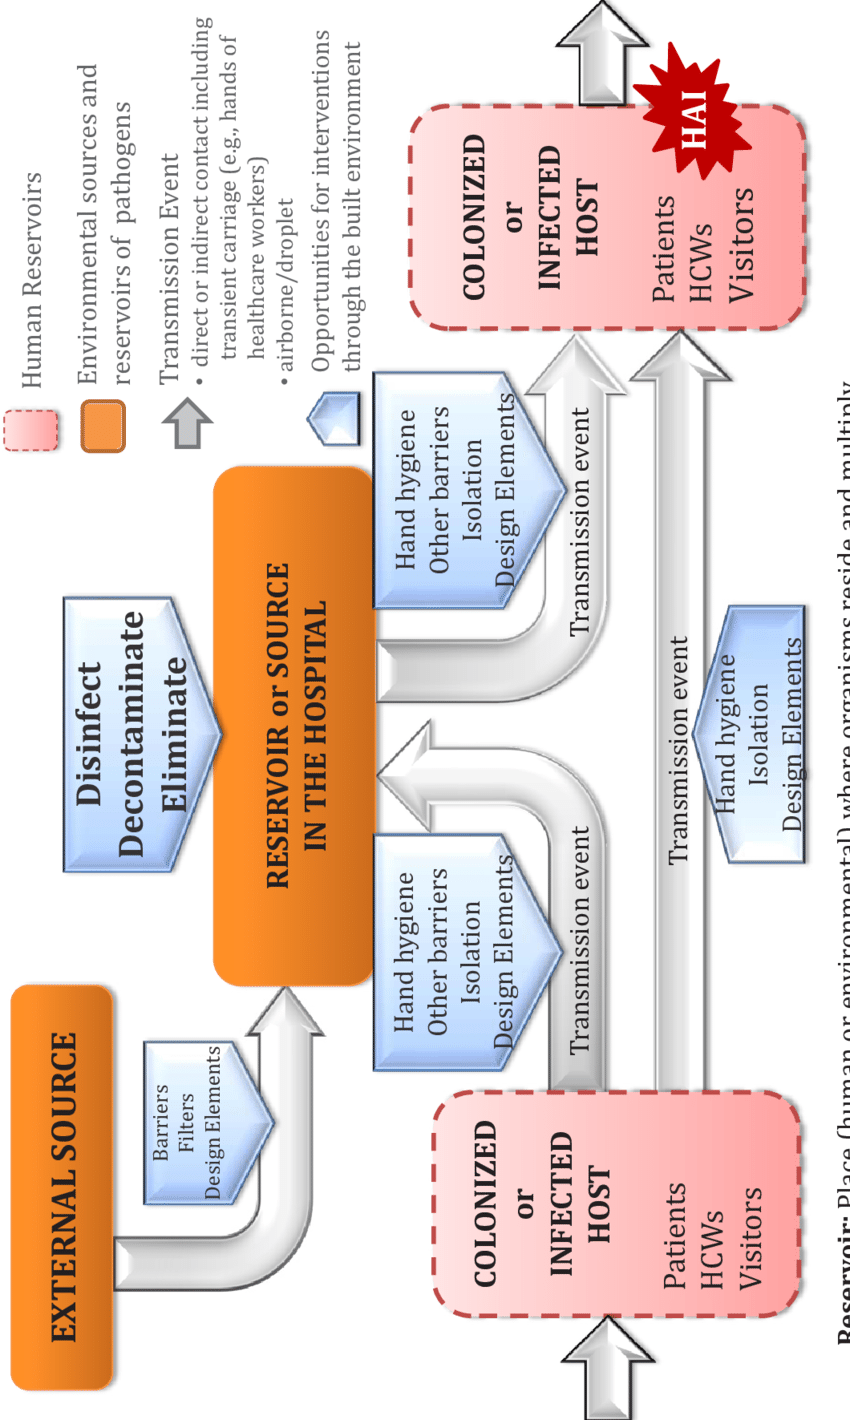 hight resolution of chain of transmission interventions model